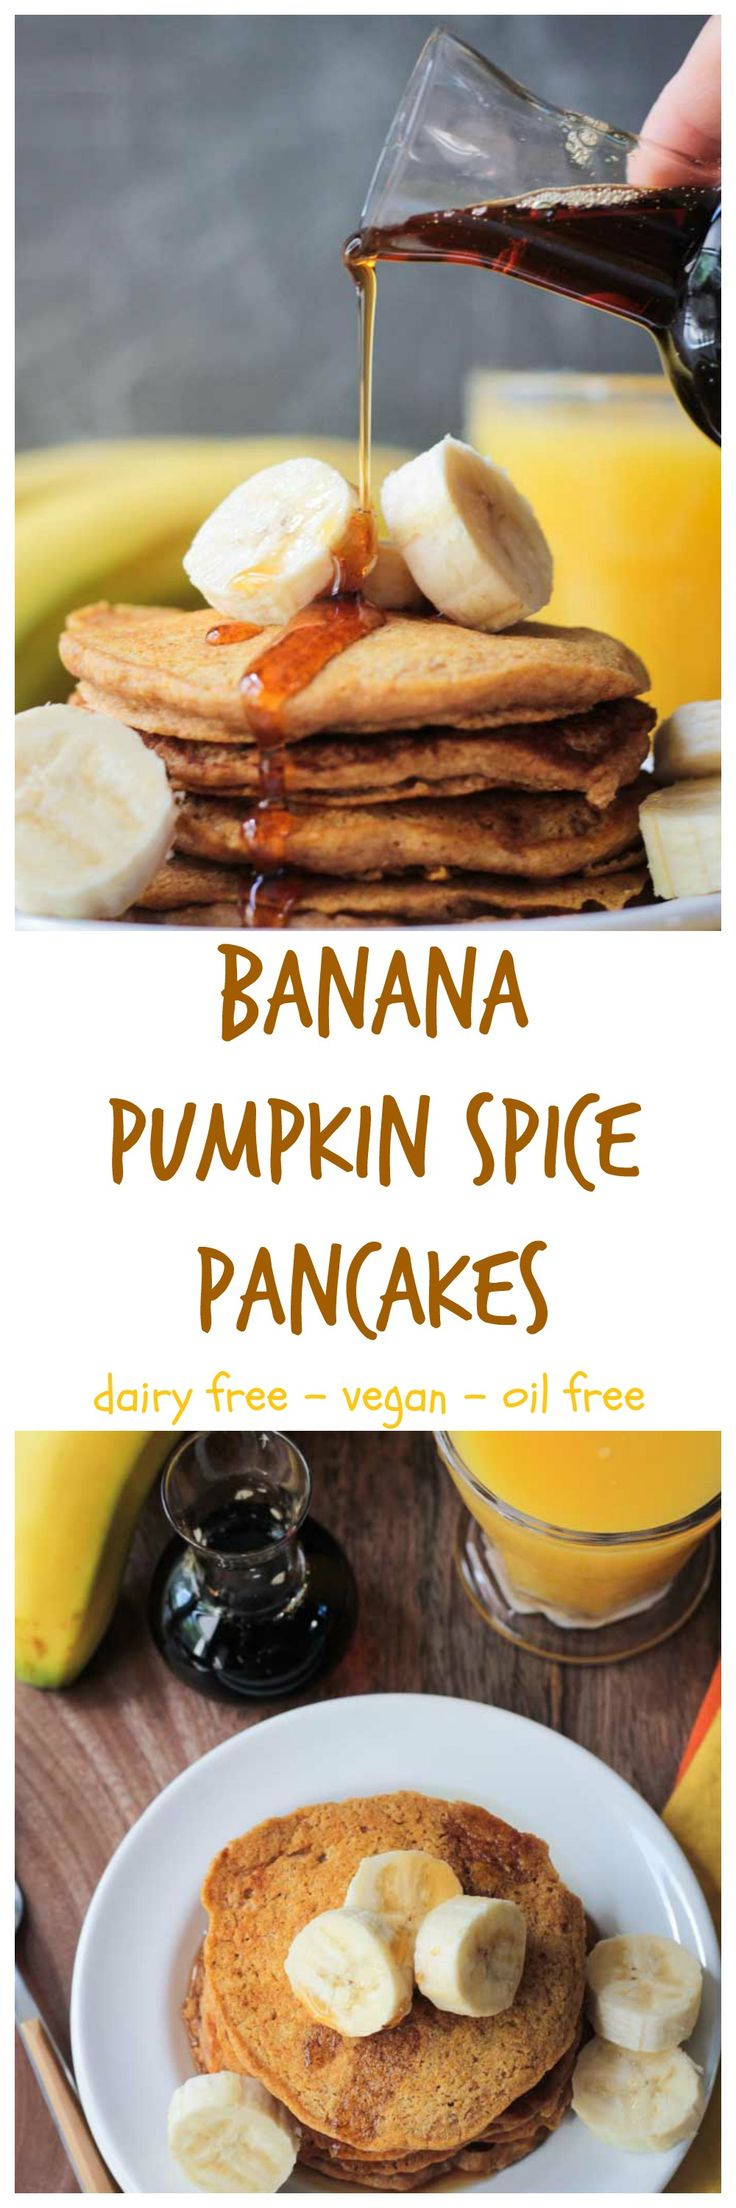 Banana Pumpkin Spice Pancakes - vegan | dairy free | oil free | egg free | whole wheat | autumn | fall | breakfast | brunch | pancake day | healthy | clean eating | cinnamon